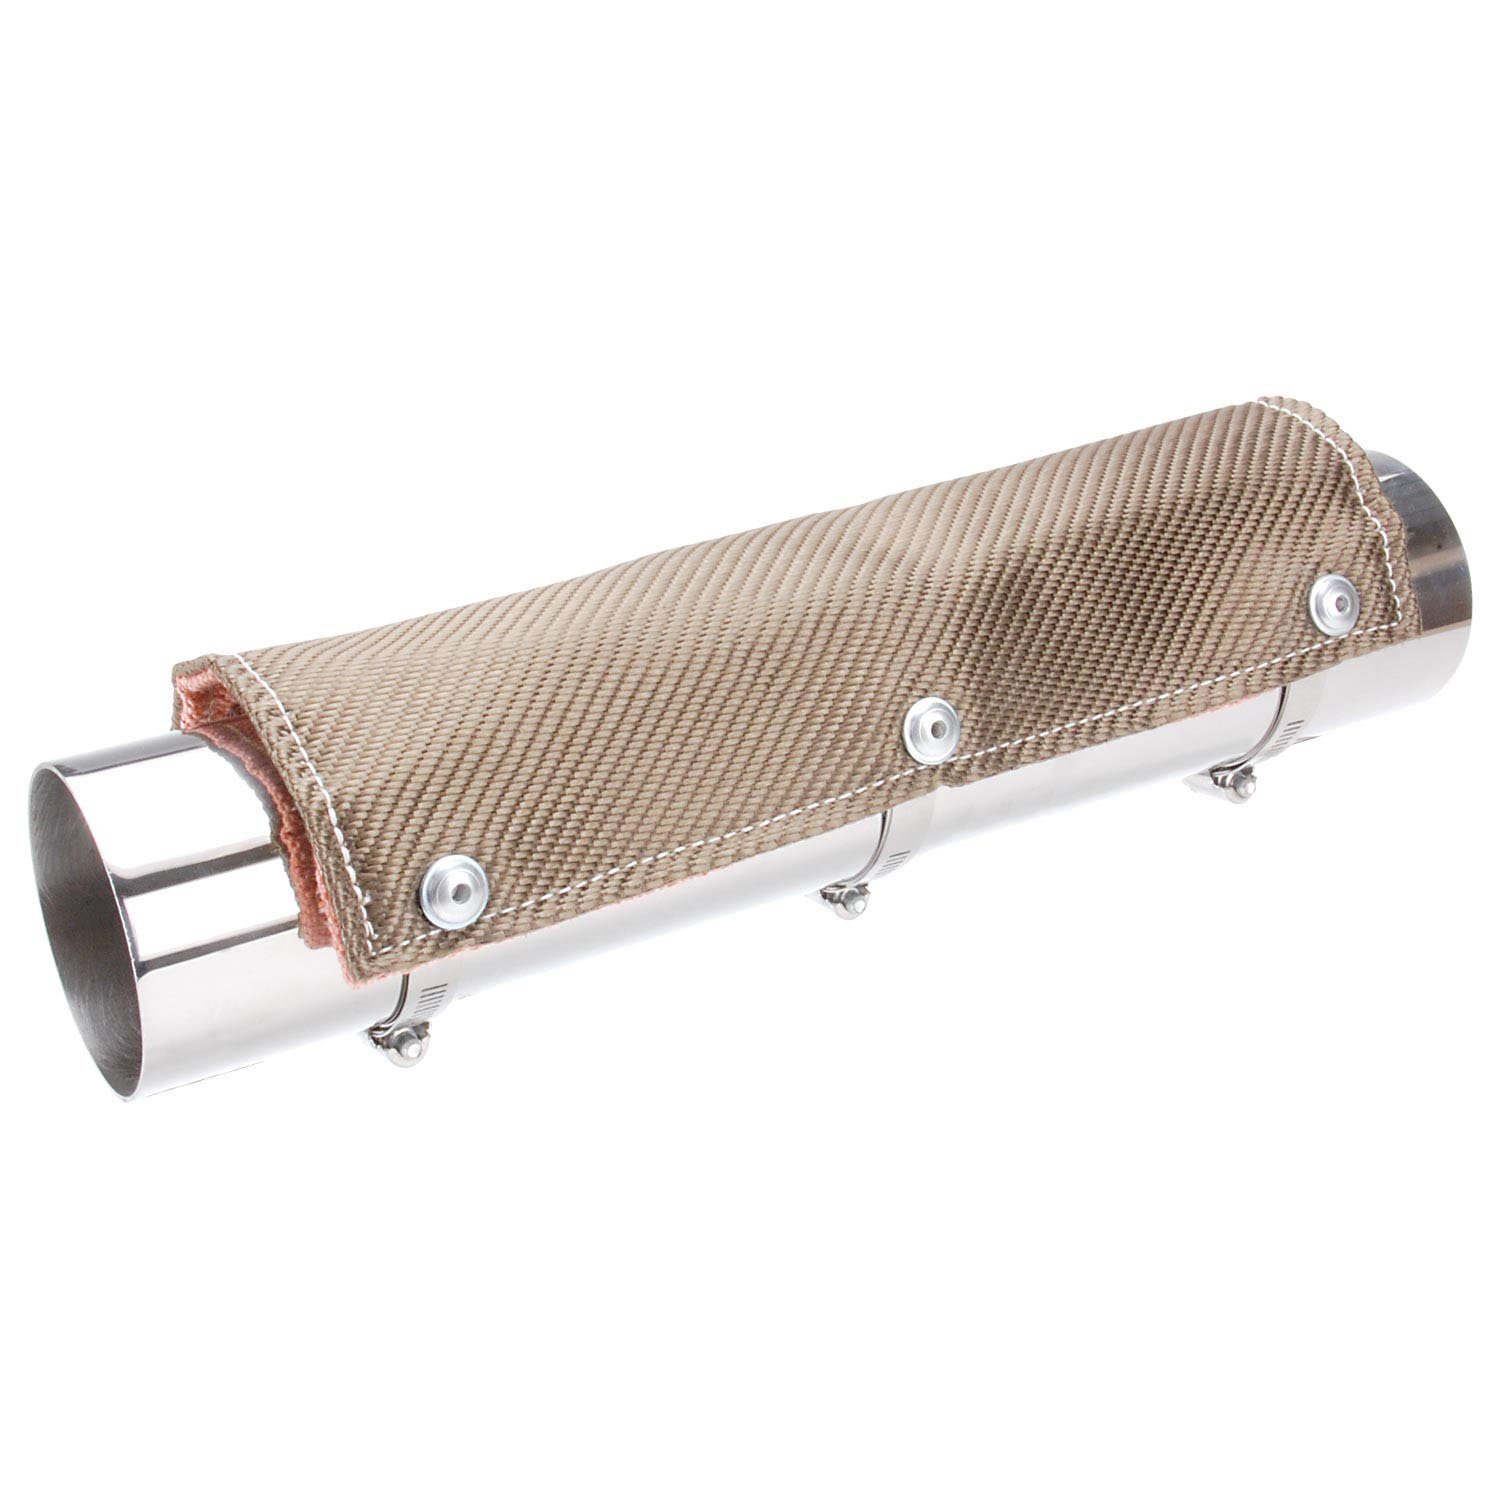 Design Engineering 010452 Titanium Pipe Shield 6 x 3 Exhaust Heat Shield